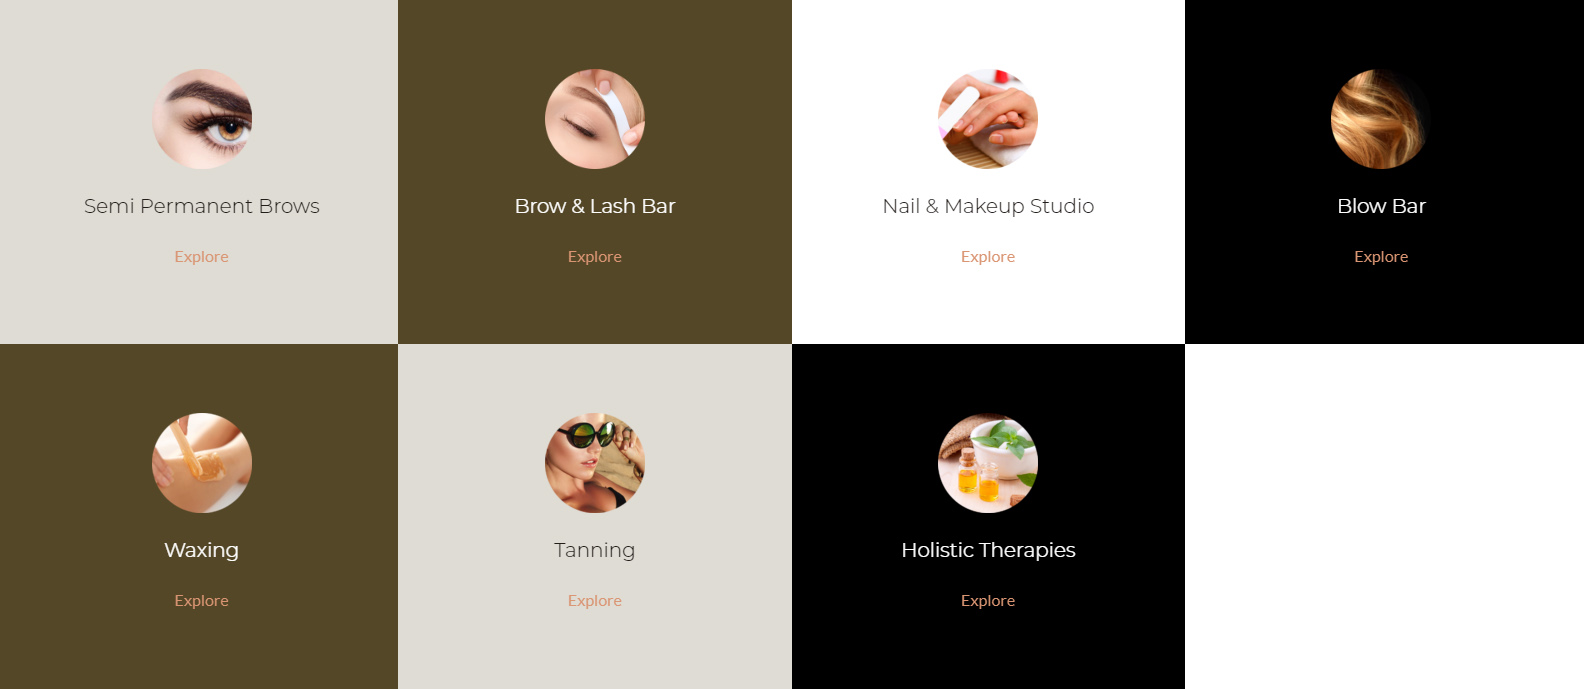 Interactive Treatment Highlight Sections